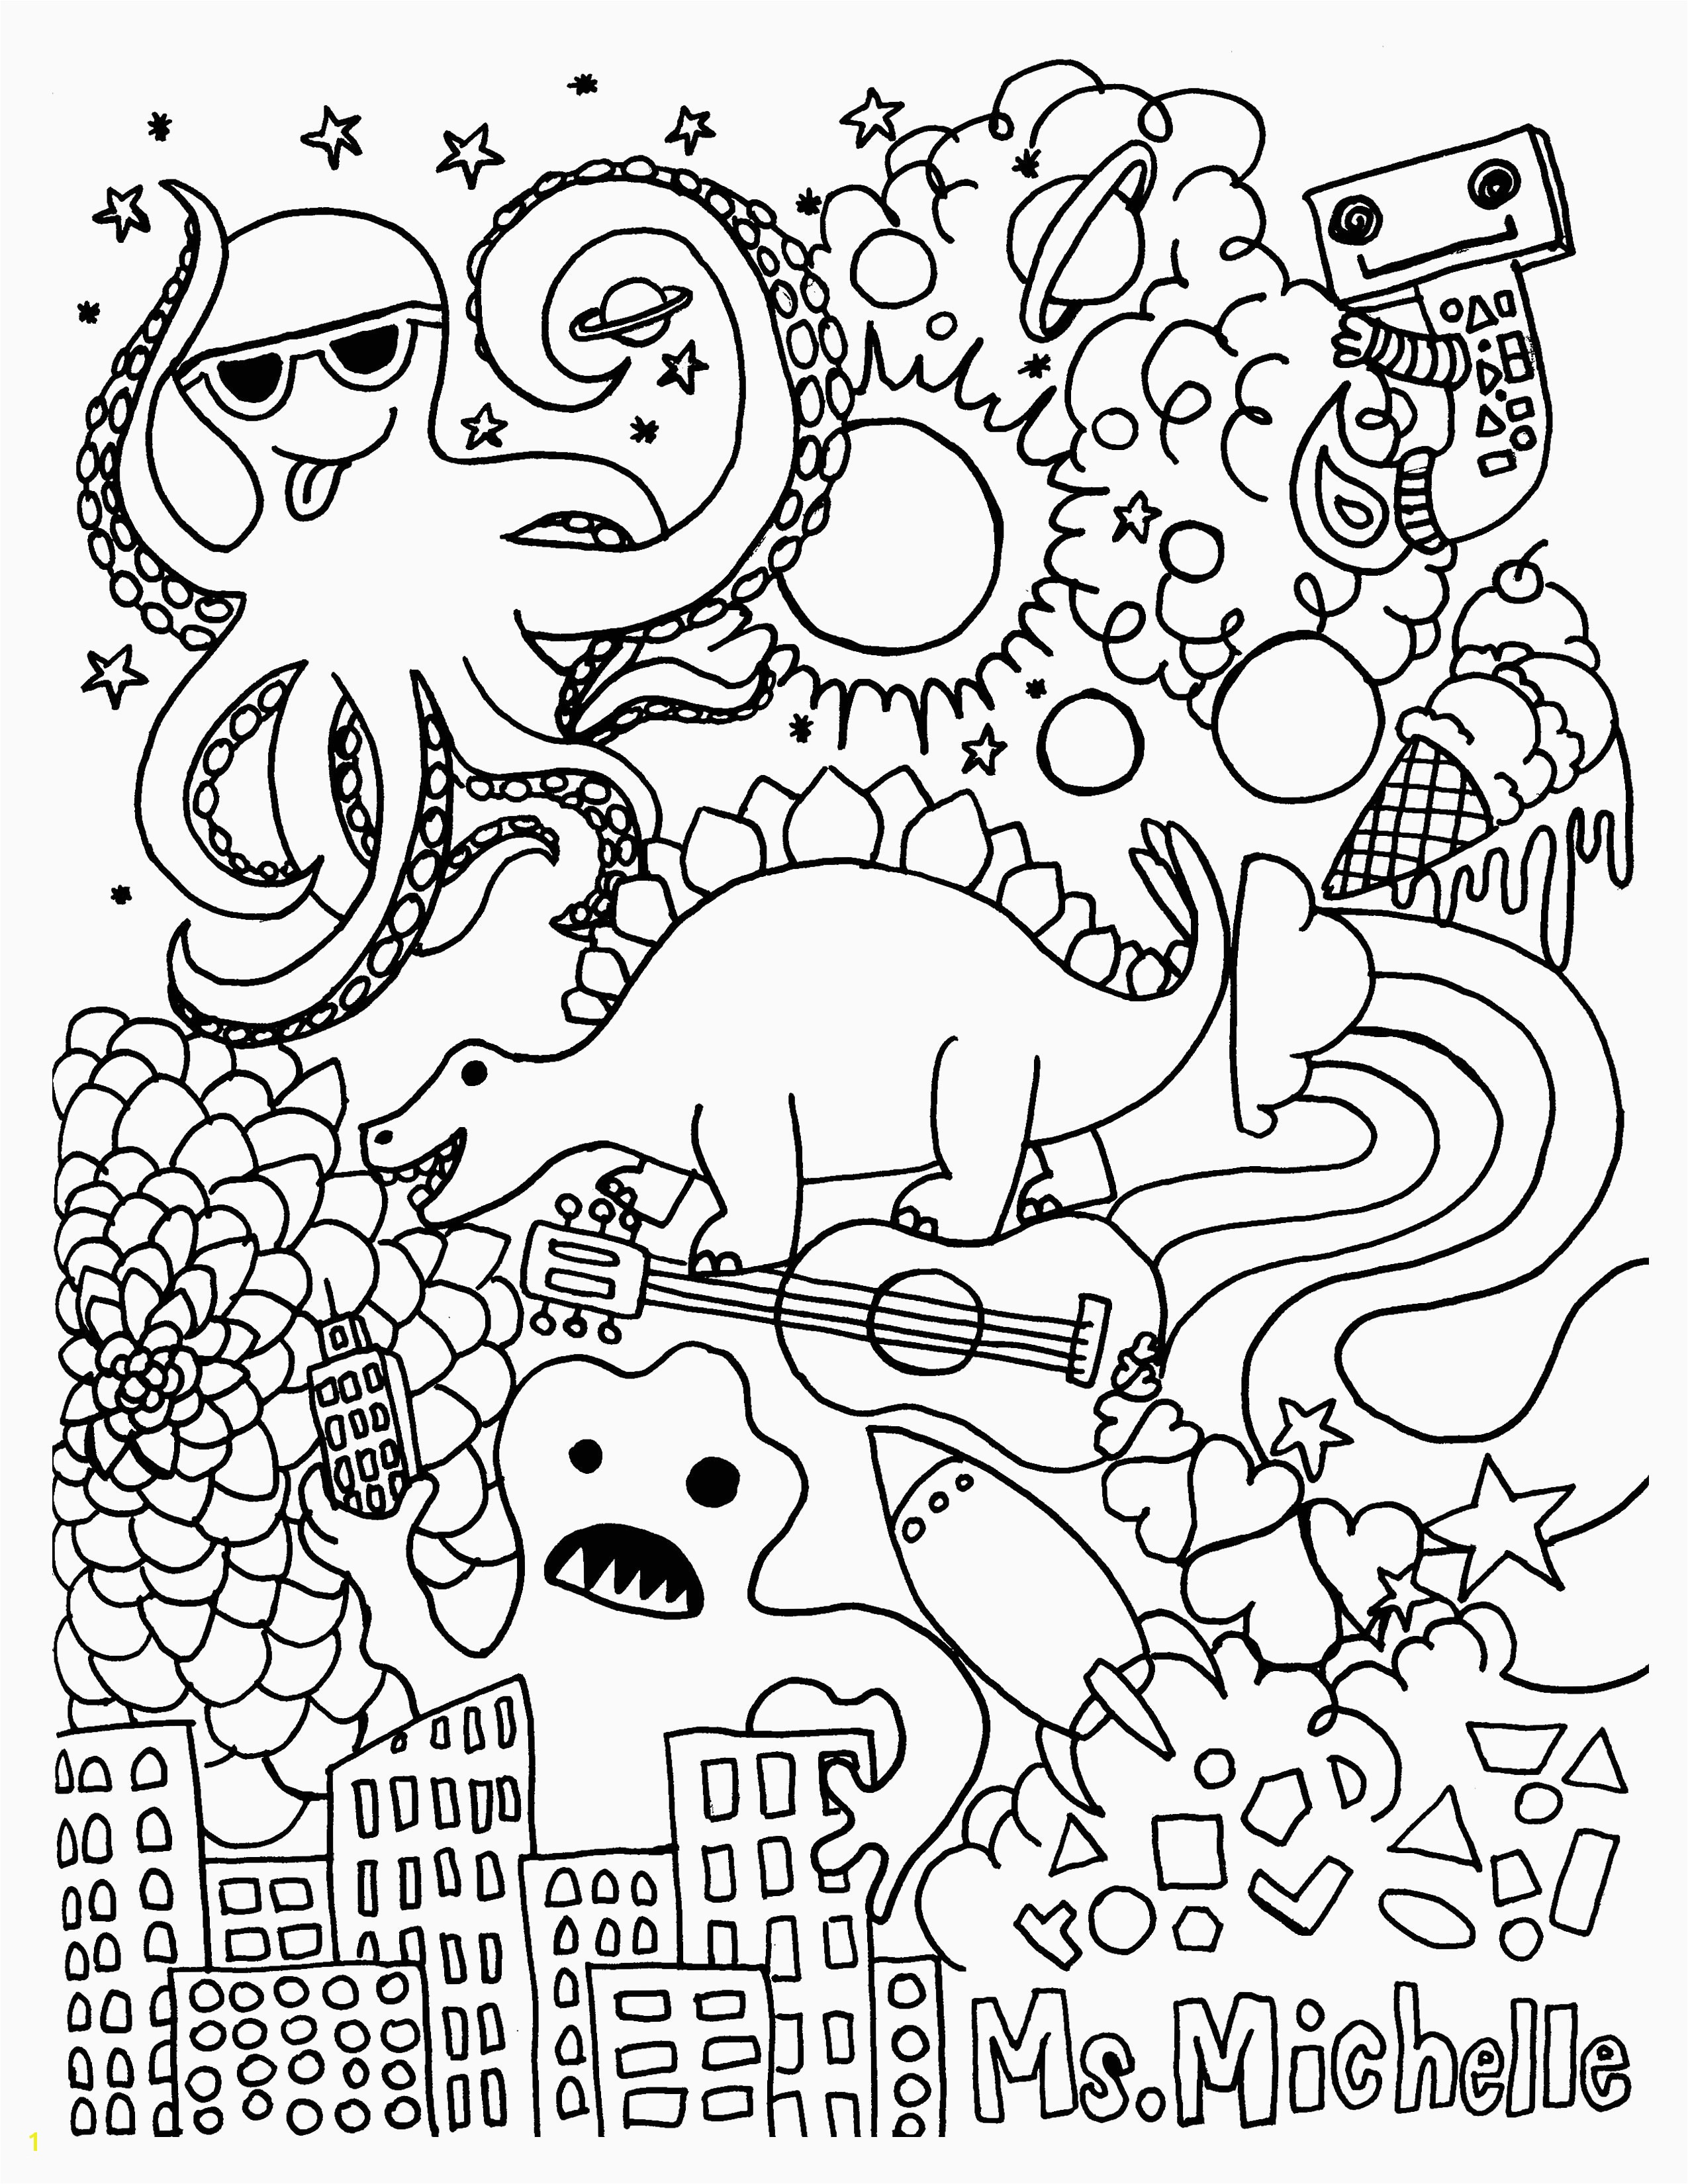 18inspirational Coloring Sheets For Kids More Image Ideas